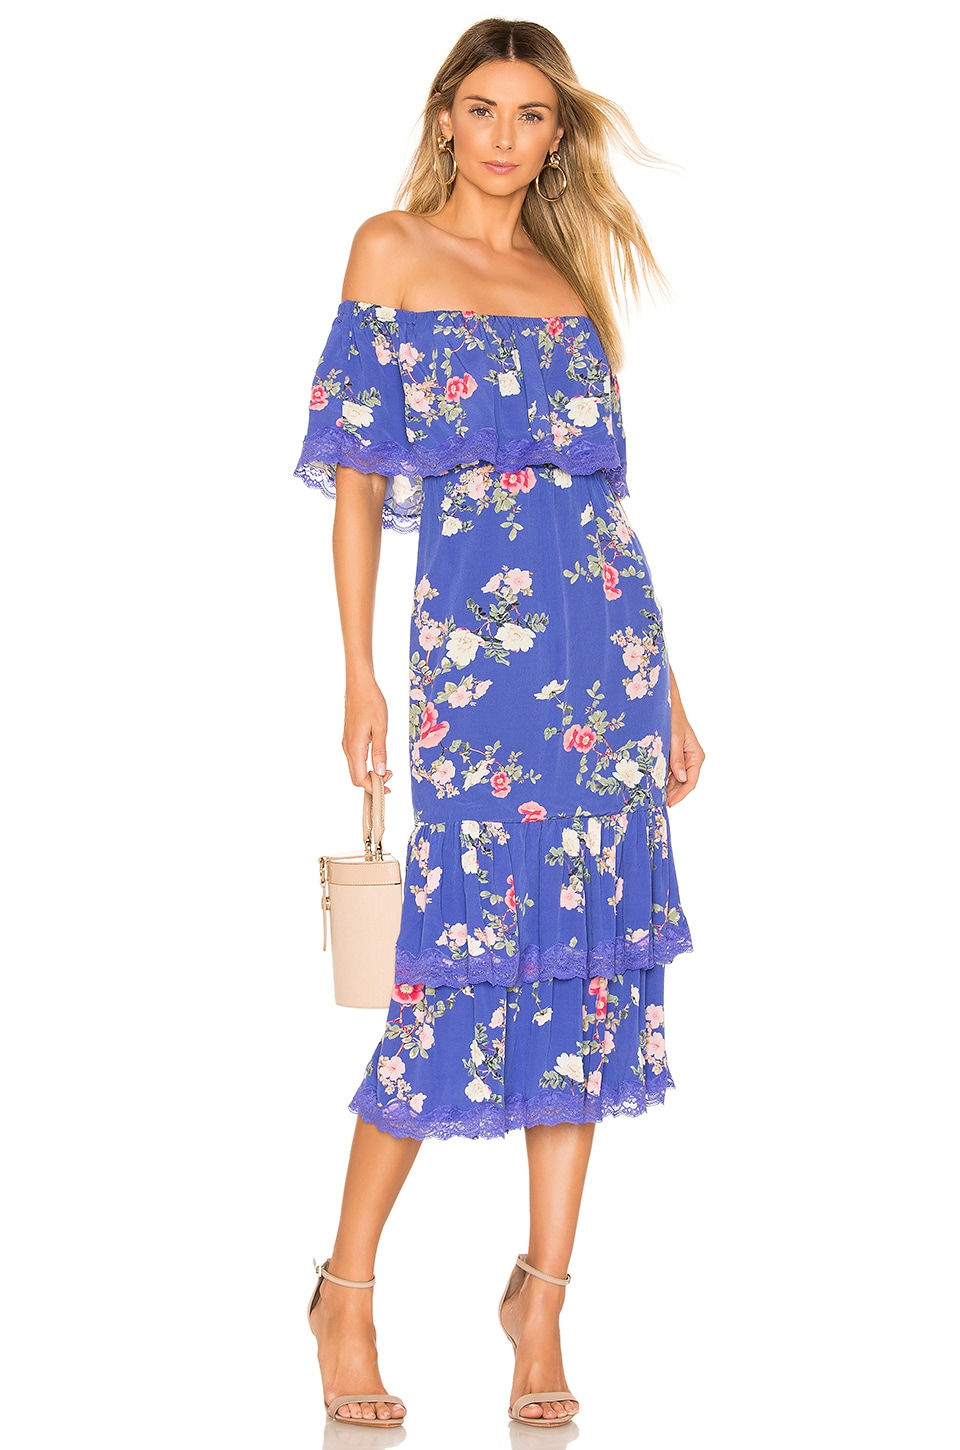 Lovers + Friends Elouise Midi Dress in Feeling Blue Floral